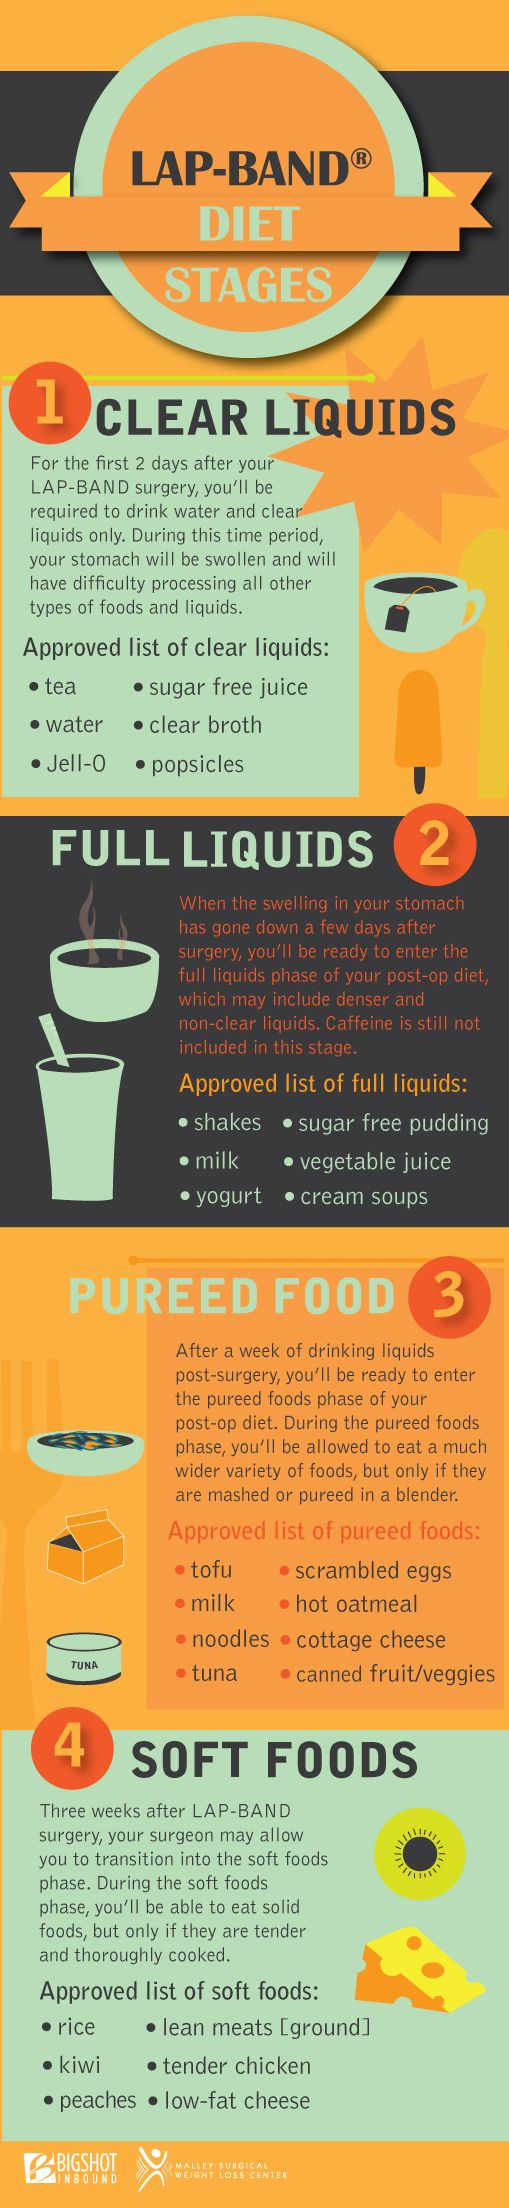 The stages of your diet plan post-surgery will include the clear liquid phase, the full liquids phase, the pureed food phase, and the soft foods phase. After you complete all three diet phases, you will begin eating solid foods, but in much smaller portions than before the procedure. Check out the infographic below to learn more about LAP-BAND diet stages and see a list of approved foods for each phase.